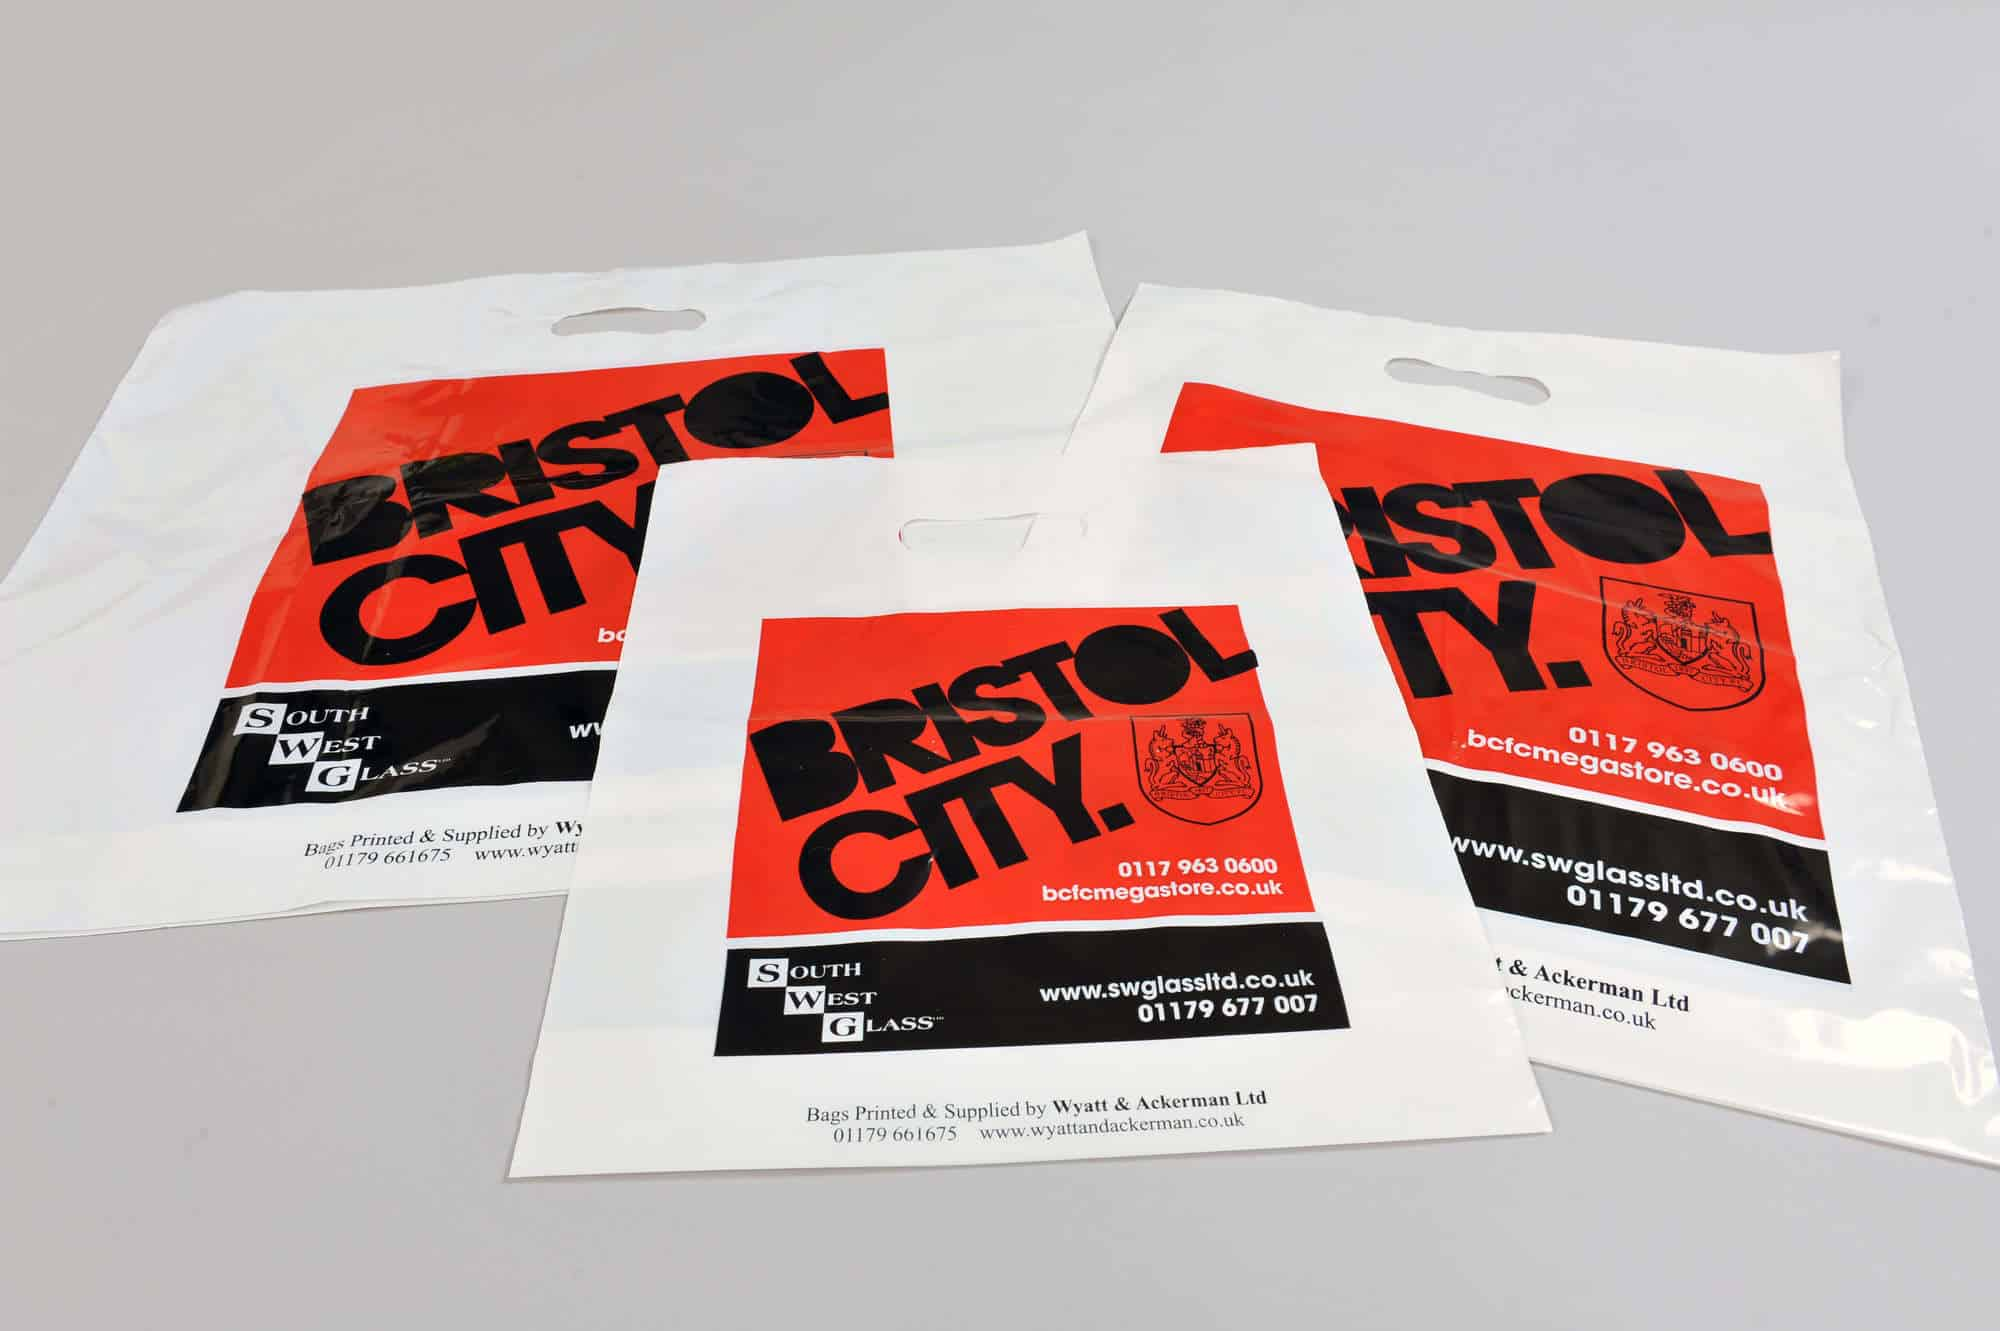 Low Density Carrier Bags Company Bristol